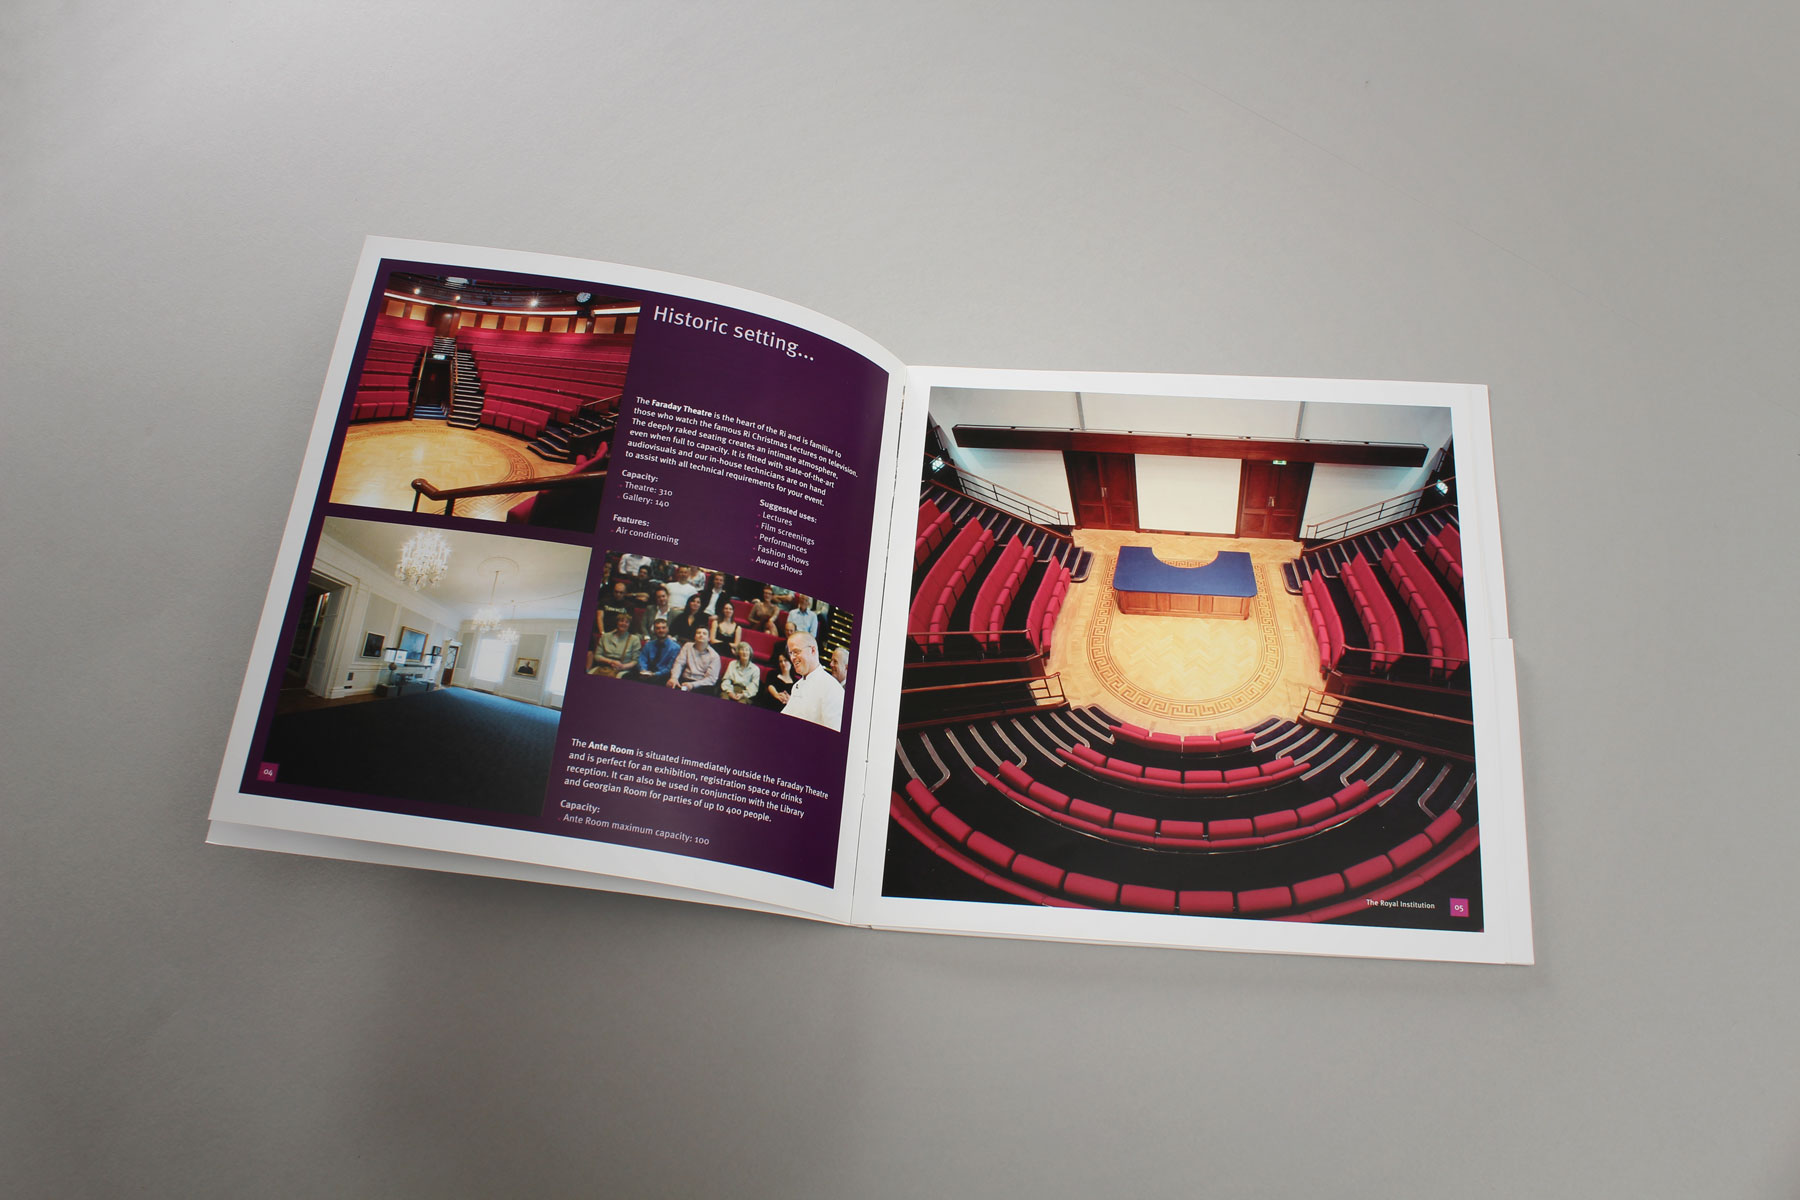 The key event space, the Faraday lecture theatre, took pride of place in the bulk of the materials.